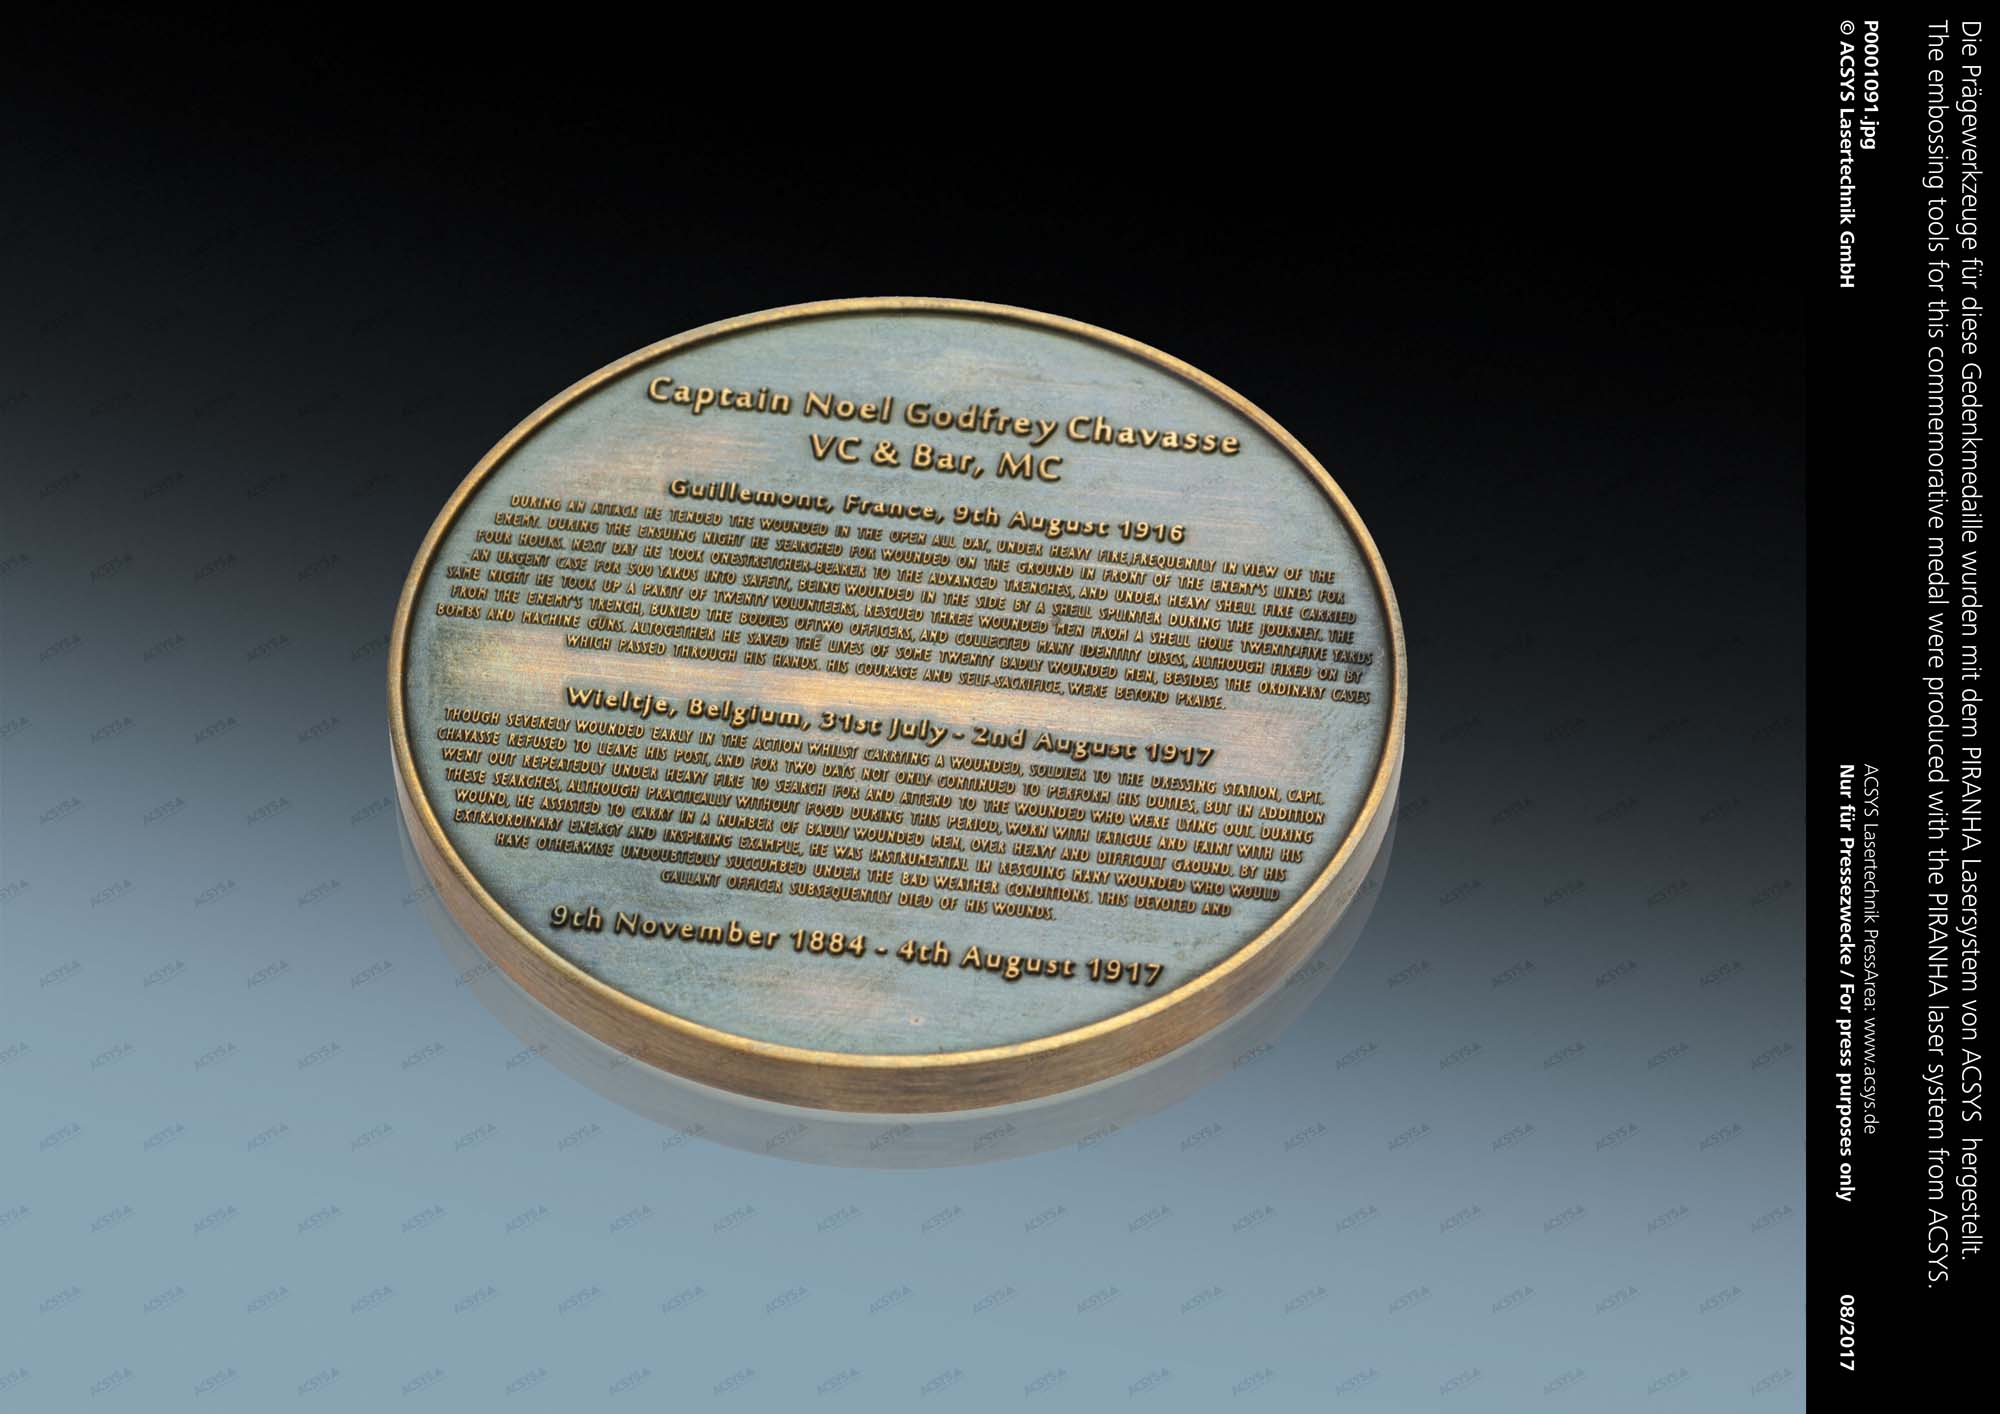 The embossing tools for this commemorative medal were produced with the PIRANHA laser system from ACSYS.